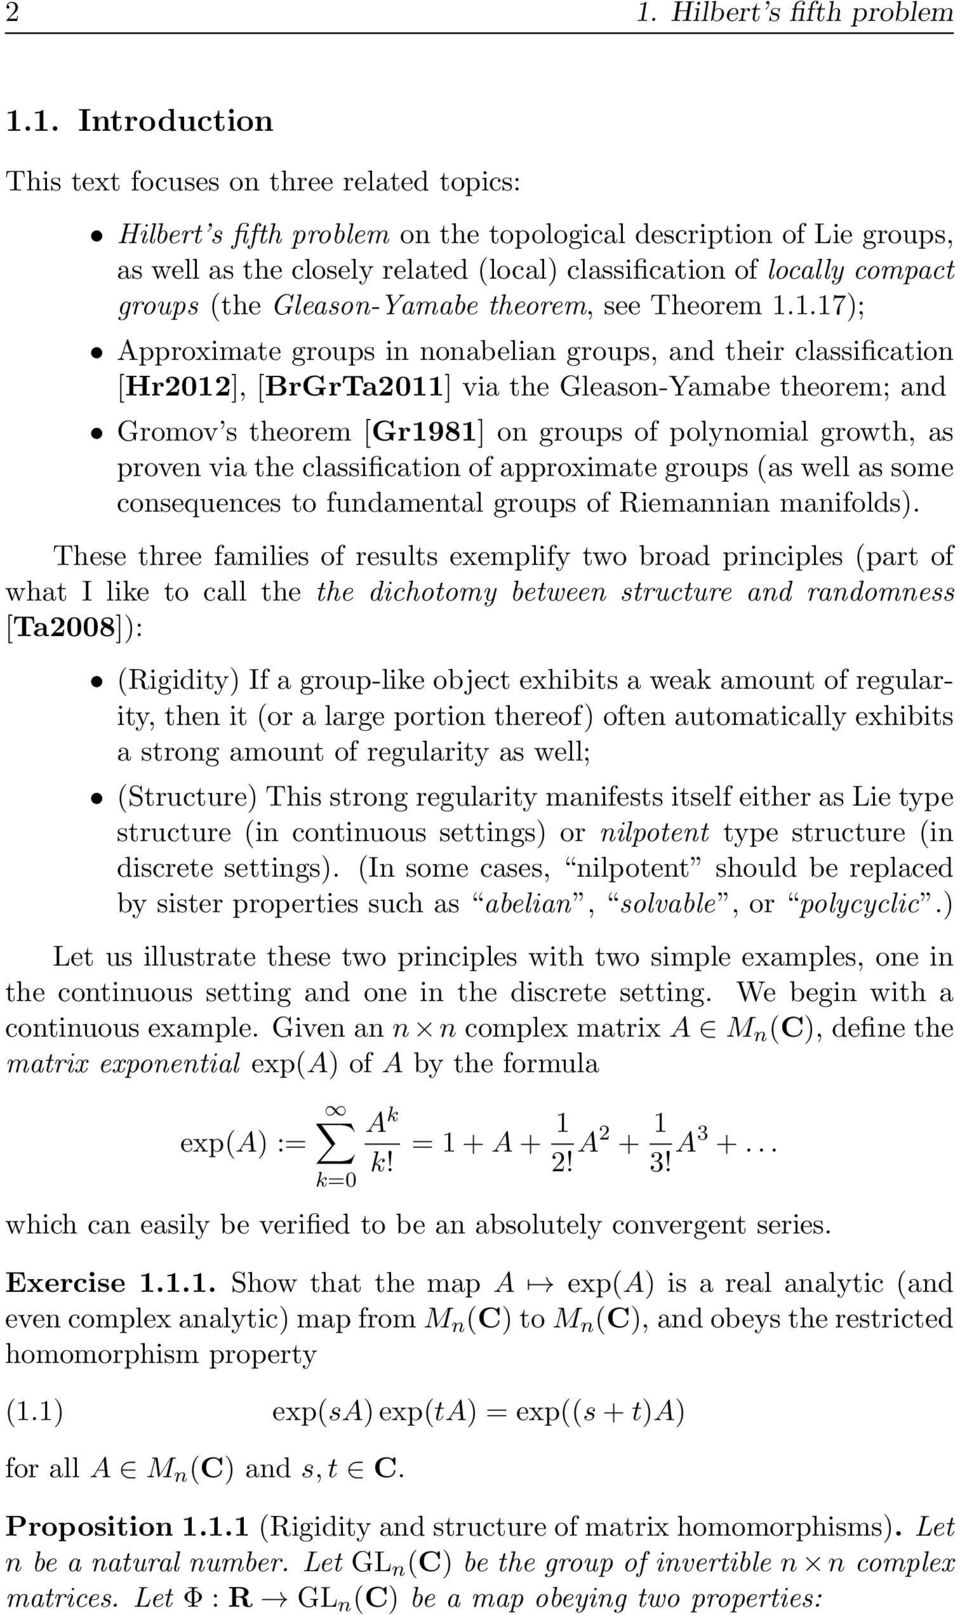 1.17); Approximate groups in nonabelian groups, and their classification [Hr2012], [BrGrTa2011] via the Gleason-Yamabe theorem; and Gromov s theorem [Gr1981] on groups of polynomial growth, as proven